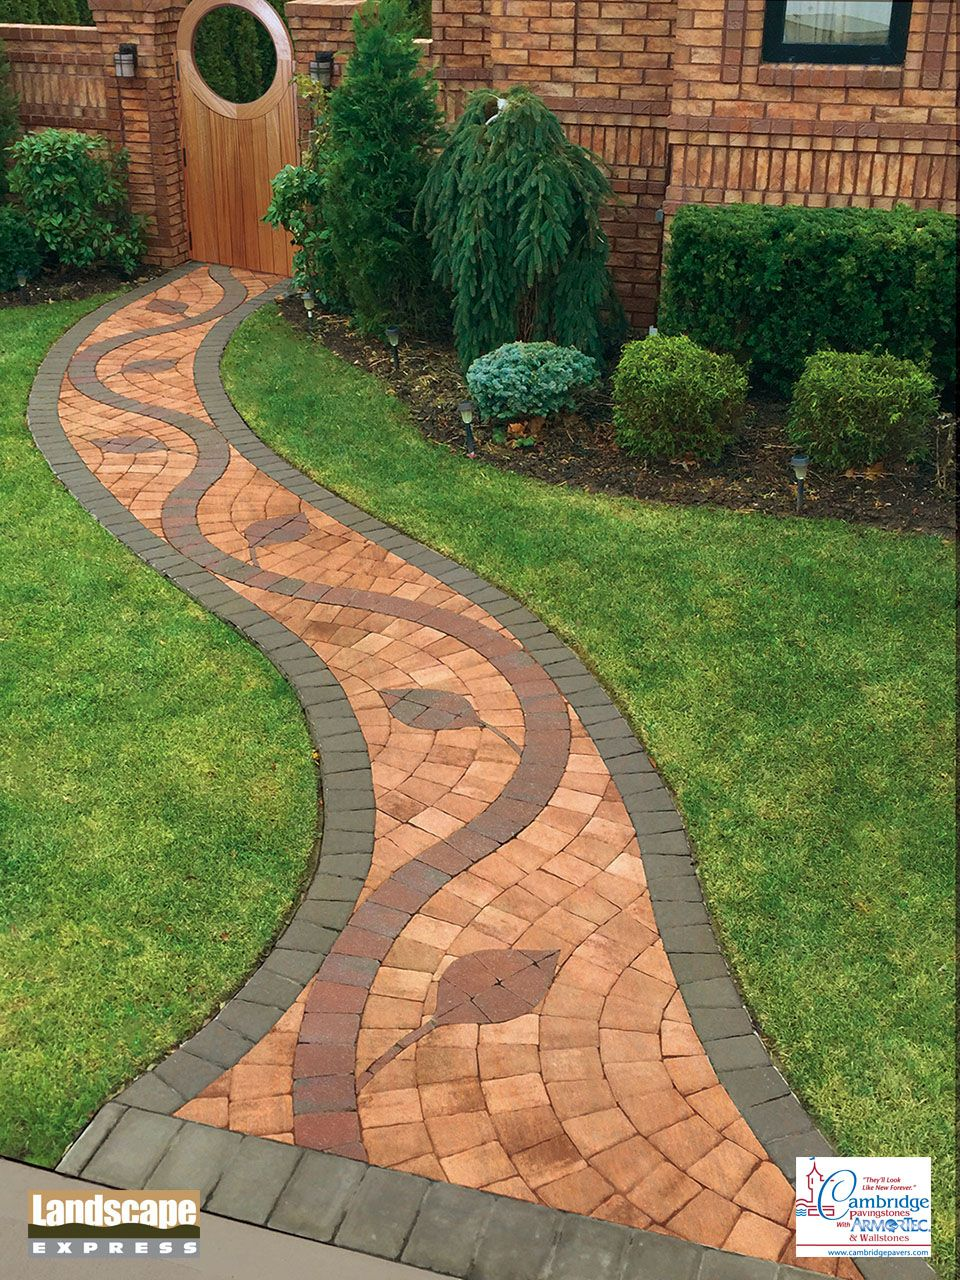 Enchanting Small Garden Landscape Ideas With Stepping Walk: Design Ideas For Brick And Paving Stone Walkways